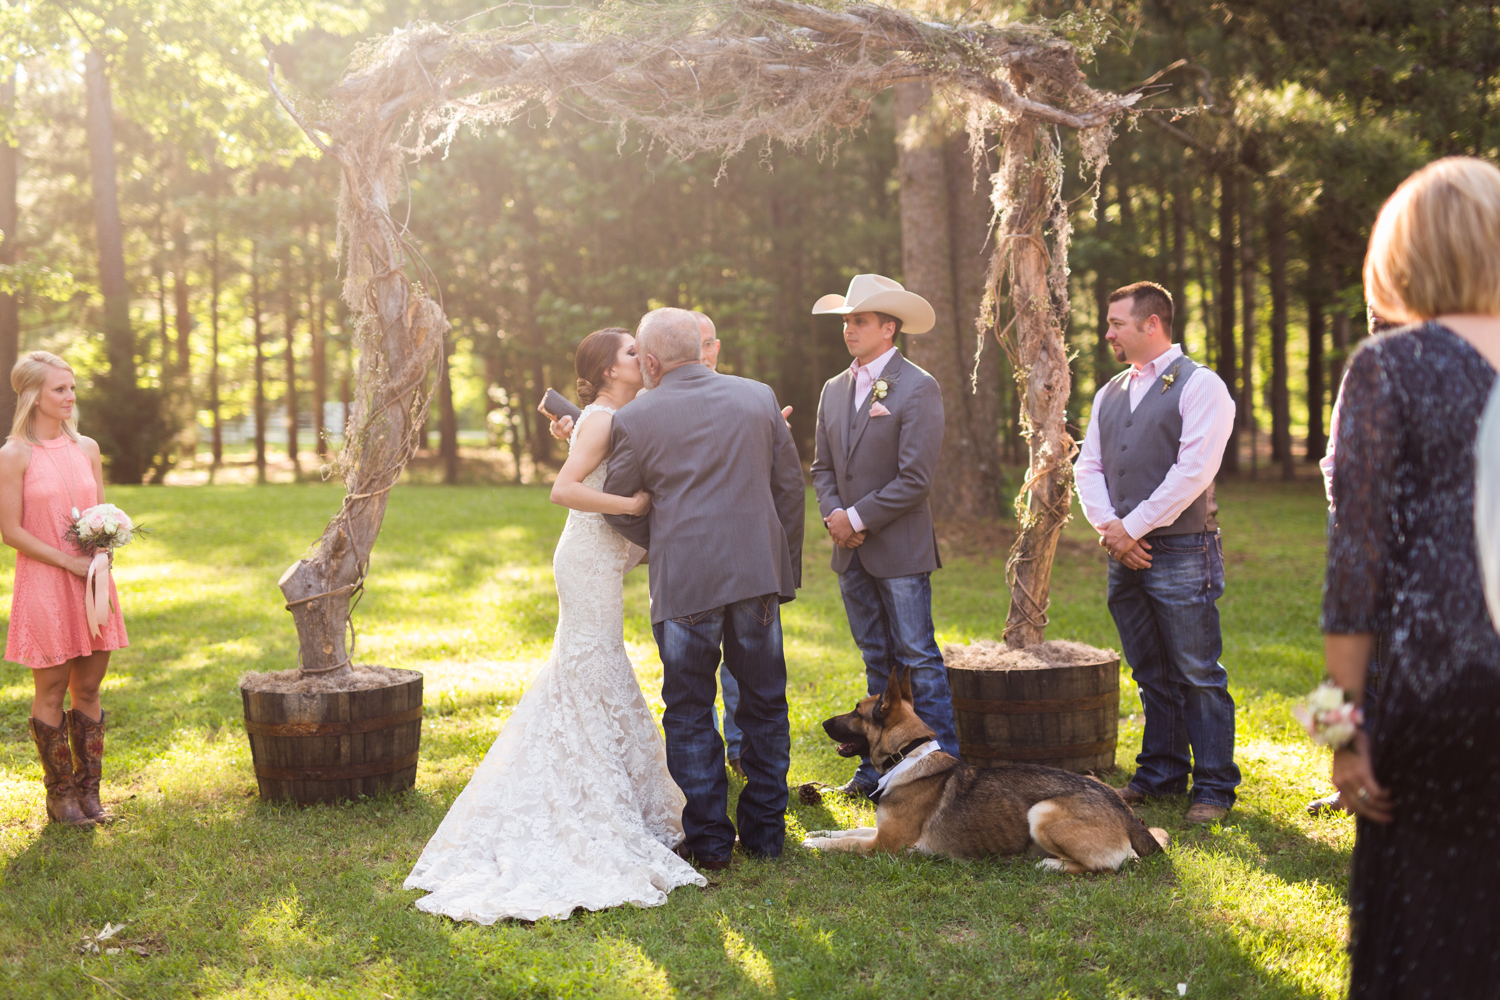 oklahoma wedding photographer pasture at willows ranch broken bow father giving away bride